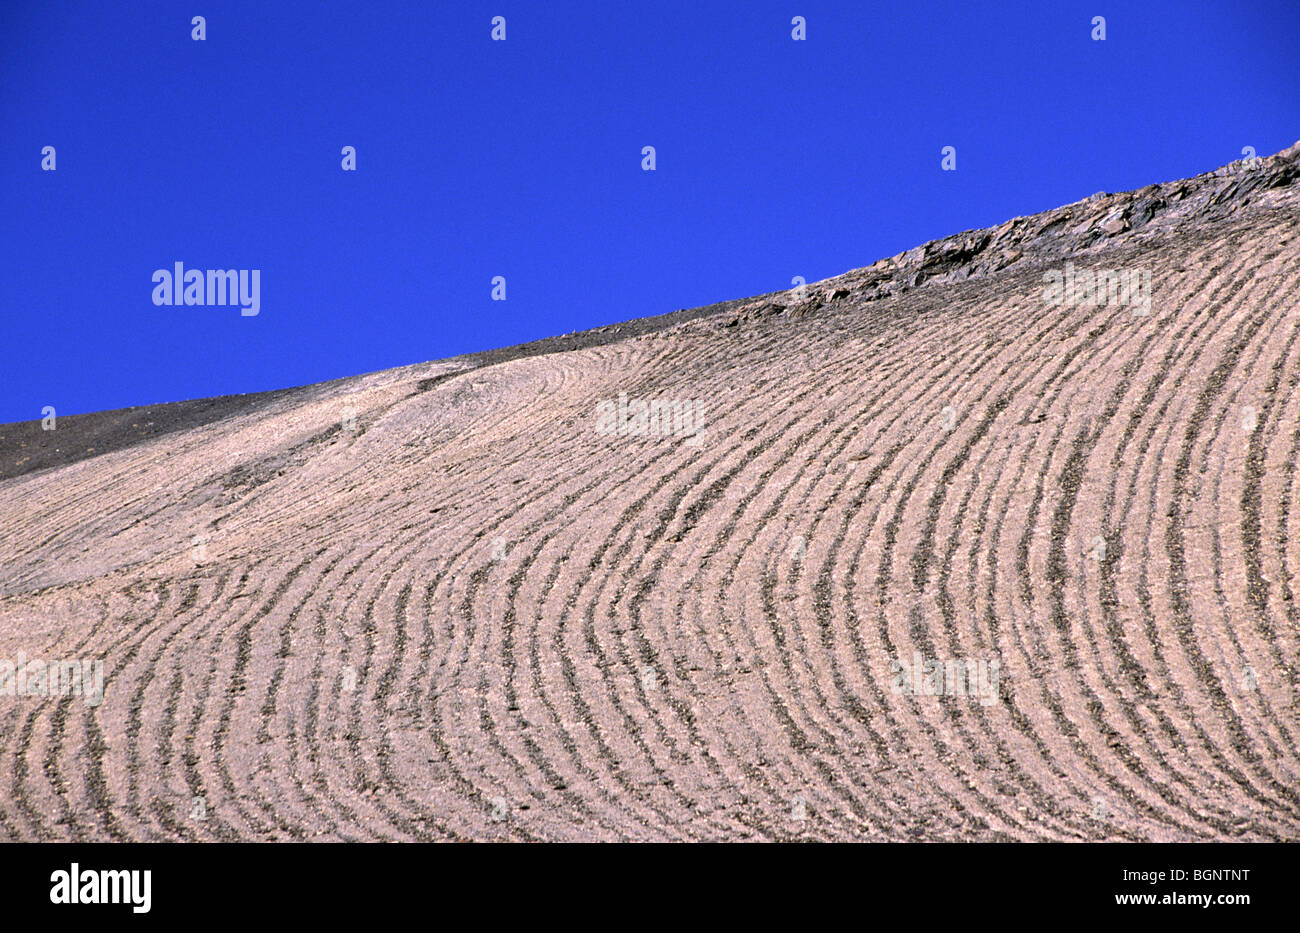 Abstract patterns on mountain side. Cordillera real, Bolivia. - Stock Image